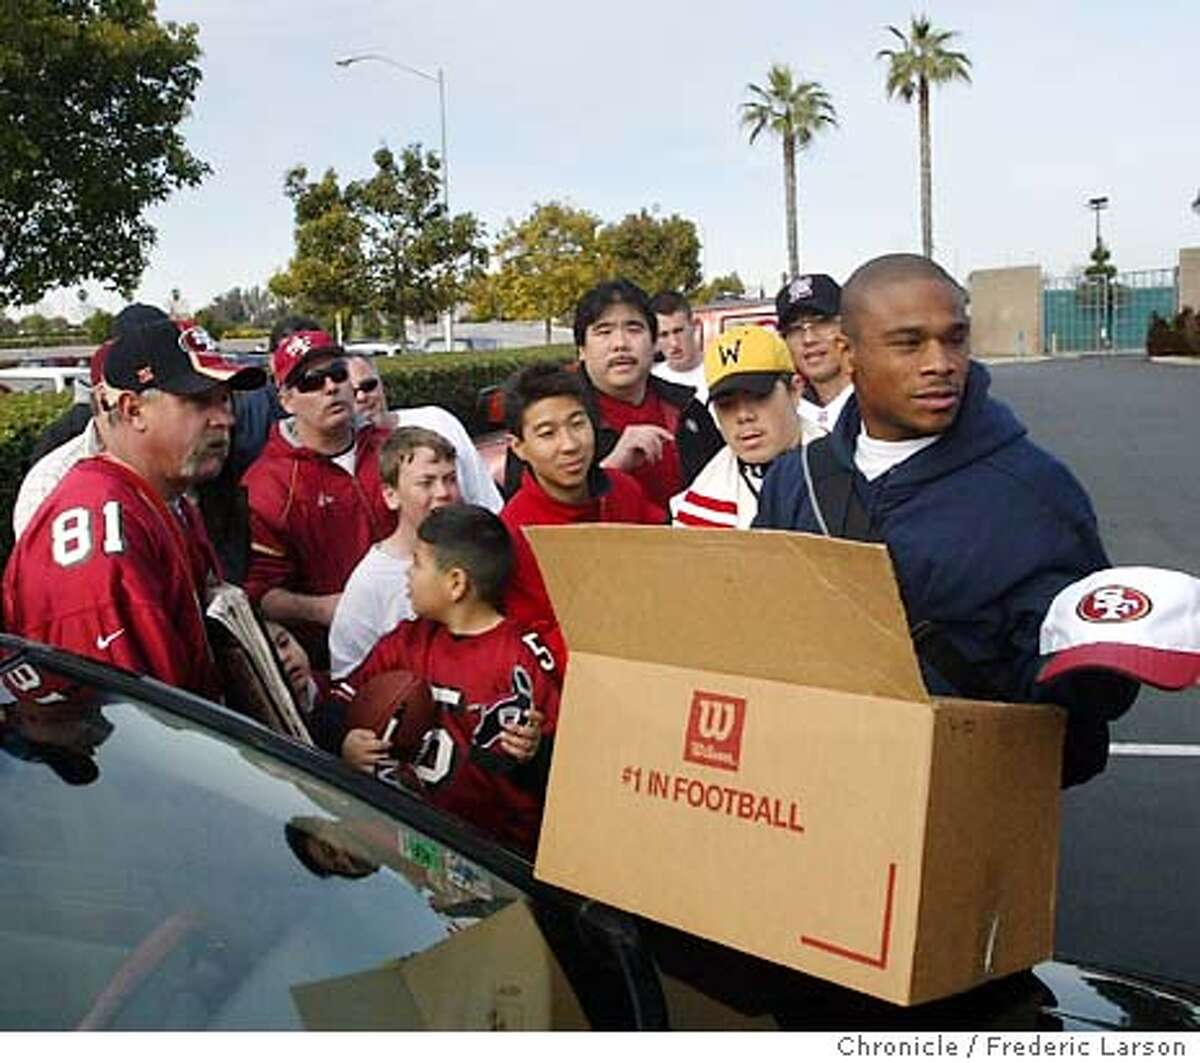 ; 49ers Jason Webster hands out gifts to fans as he departs the 49ers headquarters in Santa Clara after a below average season of 7 wins, 9 losses. City:� 12/28/03, in Santa Clara, CA. City:� . Frederic Larson/The Chronicle;